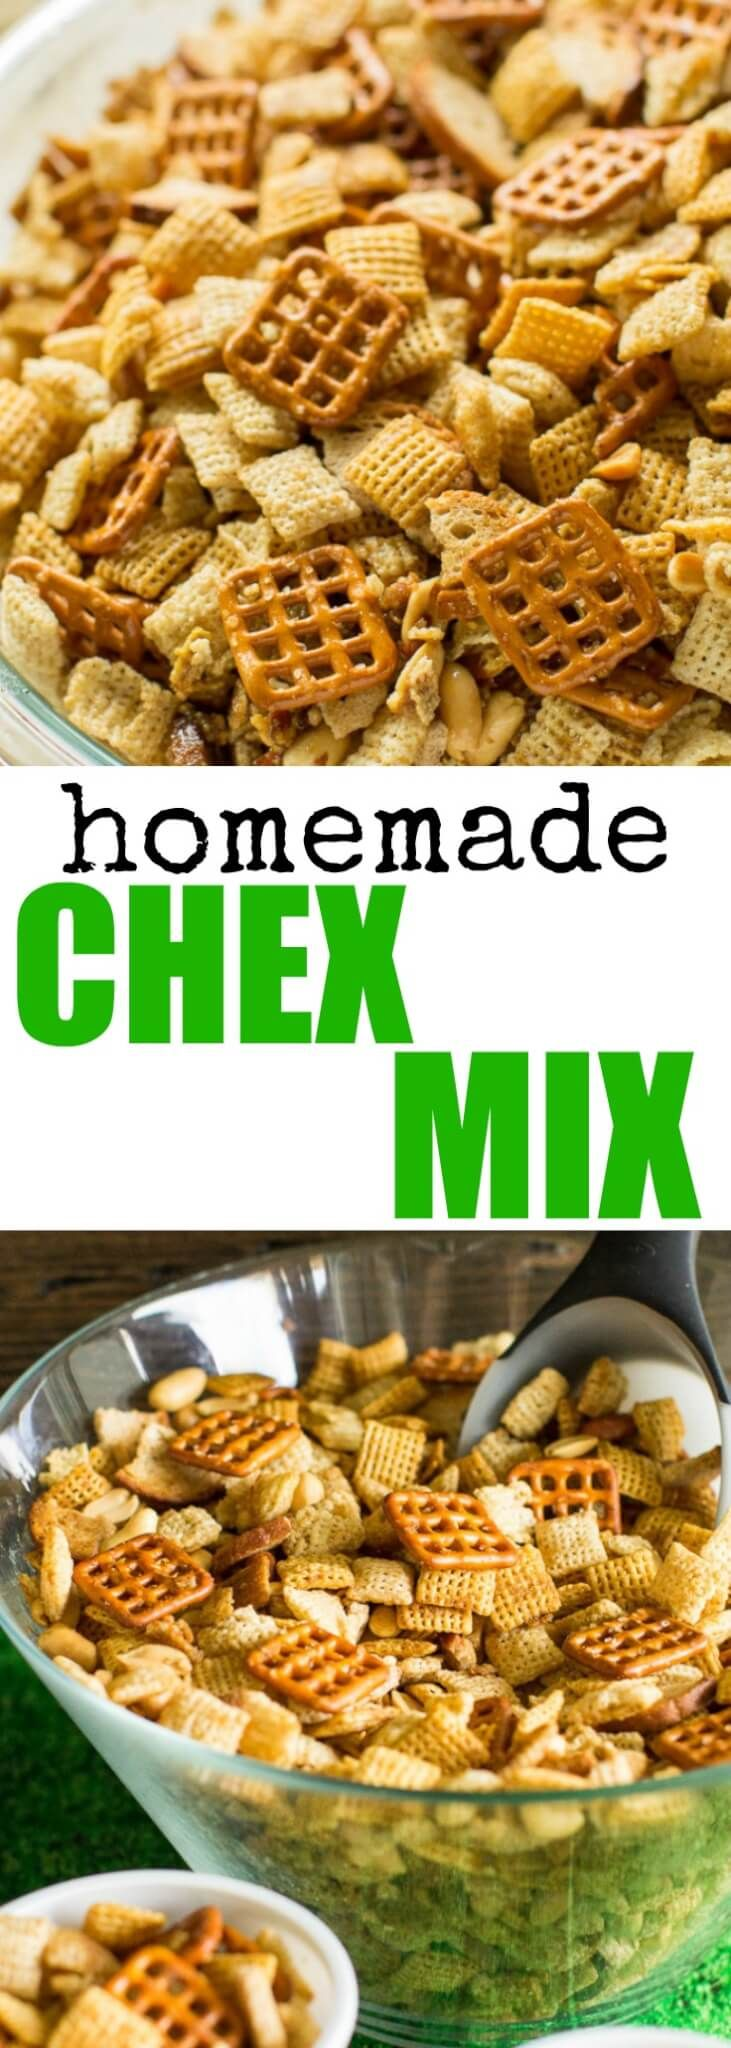 Make Homemade Chex Mix in the microwave in 10 minutes or less! Adapted from the original Chex Party Mix recipe (but I use more butter).